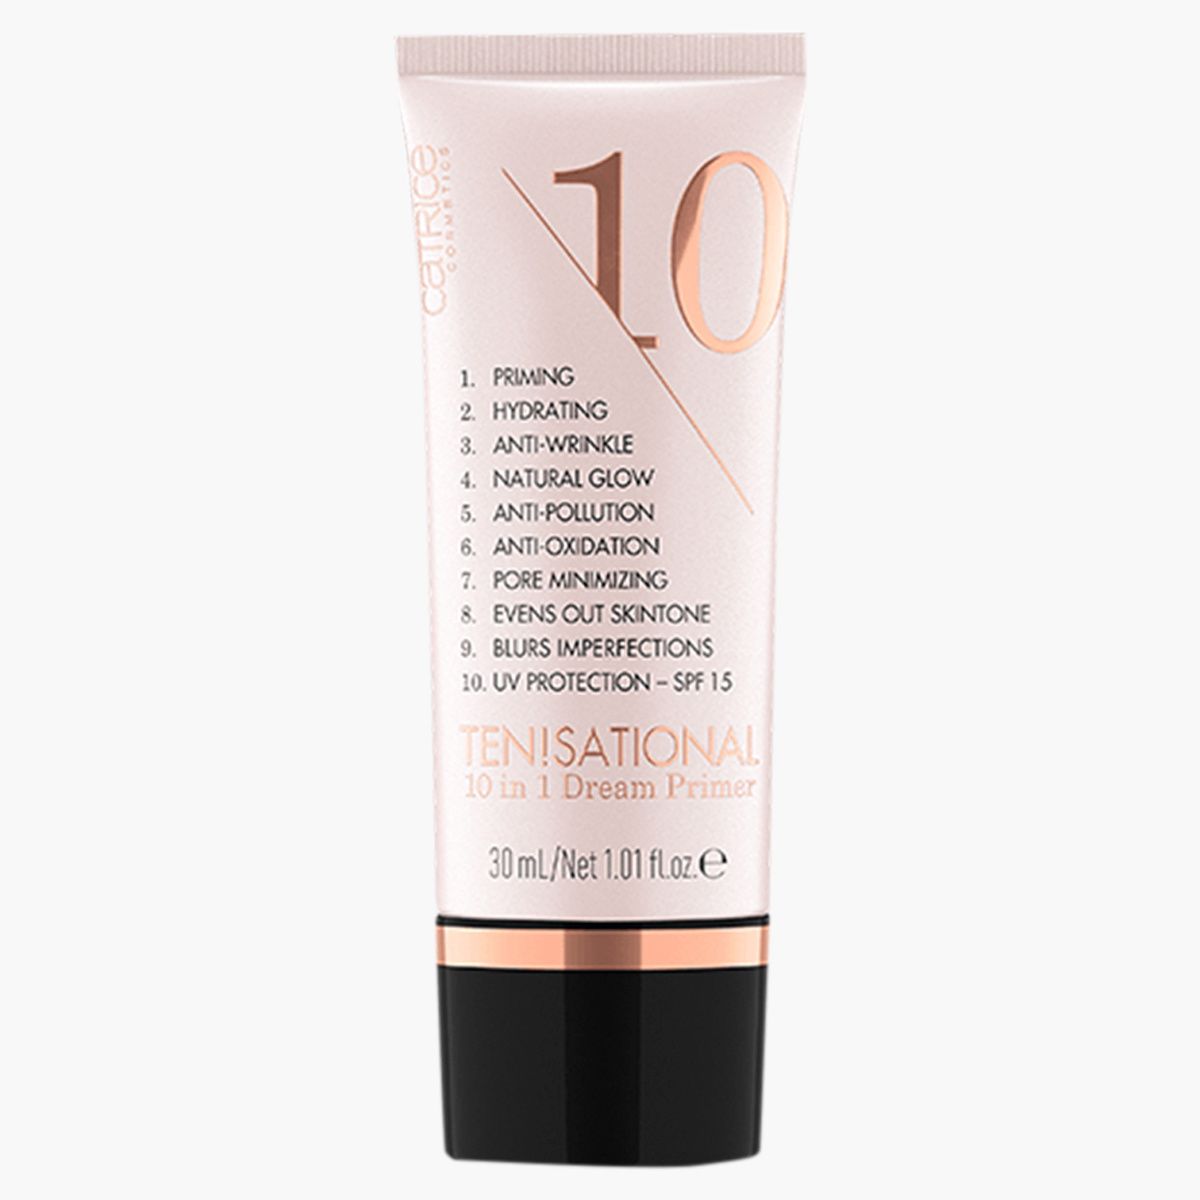 Catrice Cosmetics Ten!Sational 10 in 1 Dream Primer - 30 ml